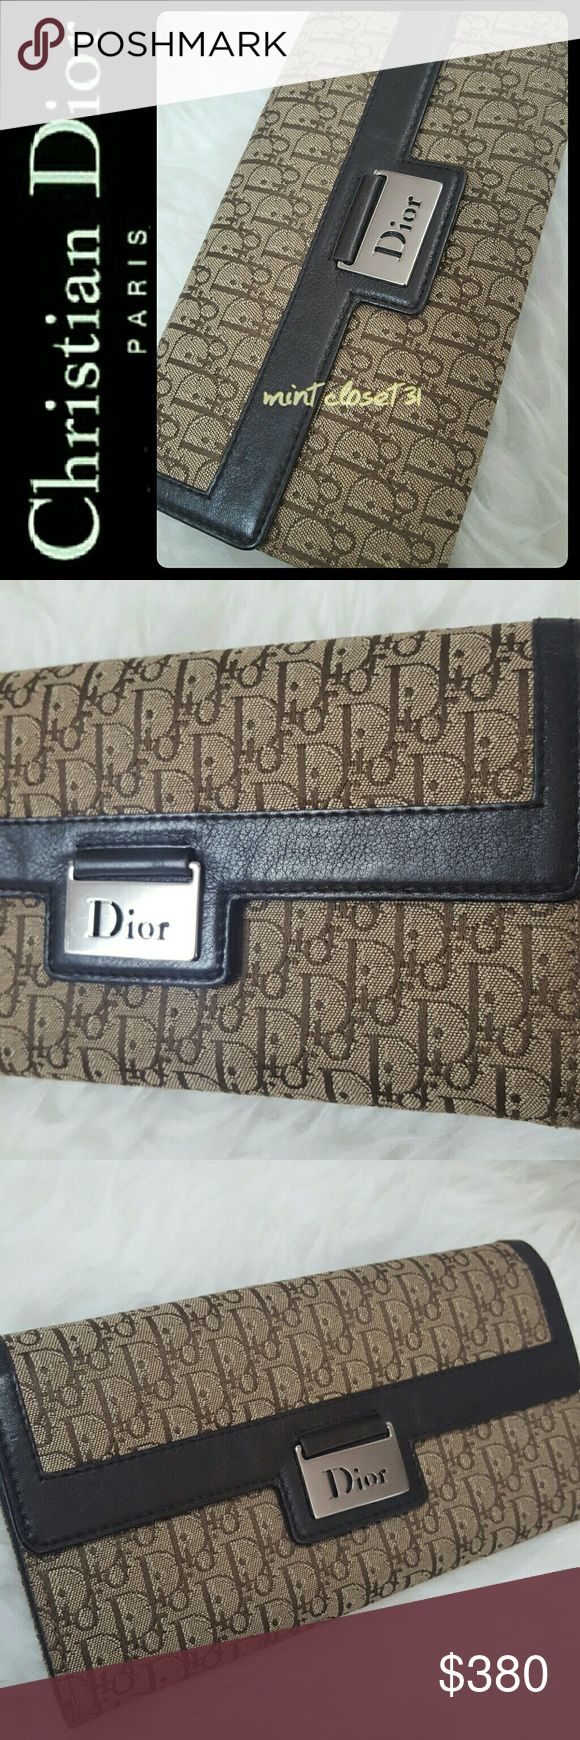 Christian Dior Italy Canvas Leather Wallet DIOR by Christian Dior Designer Wallet! Stunning Monogram Design Impregnated on Coated Canvas with Leather Trim! Features the Iconic DIOR Logo Print Embed Cutout on Silver Hang Tag on Front Flap Snap Button Closure!   Known for Luxury Staple Pieces, this DIOR Wallet Opens to Fully Lined Interior with Zipped Pocket for Coins! Multiple Bill and Storage Compartments with 6 Cards Slots! Matching Crossbody Bag on Separate Listing in my Closet! Bundle for…